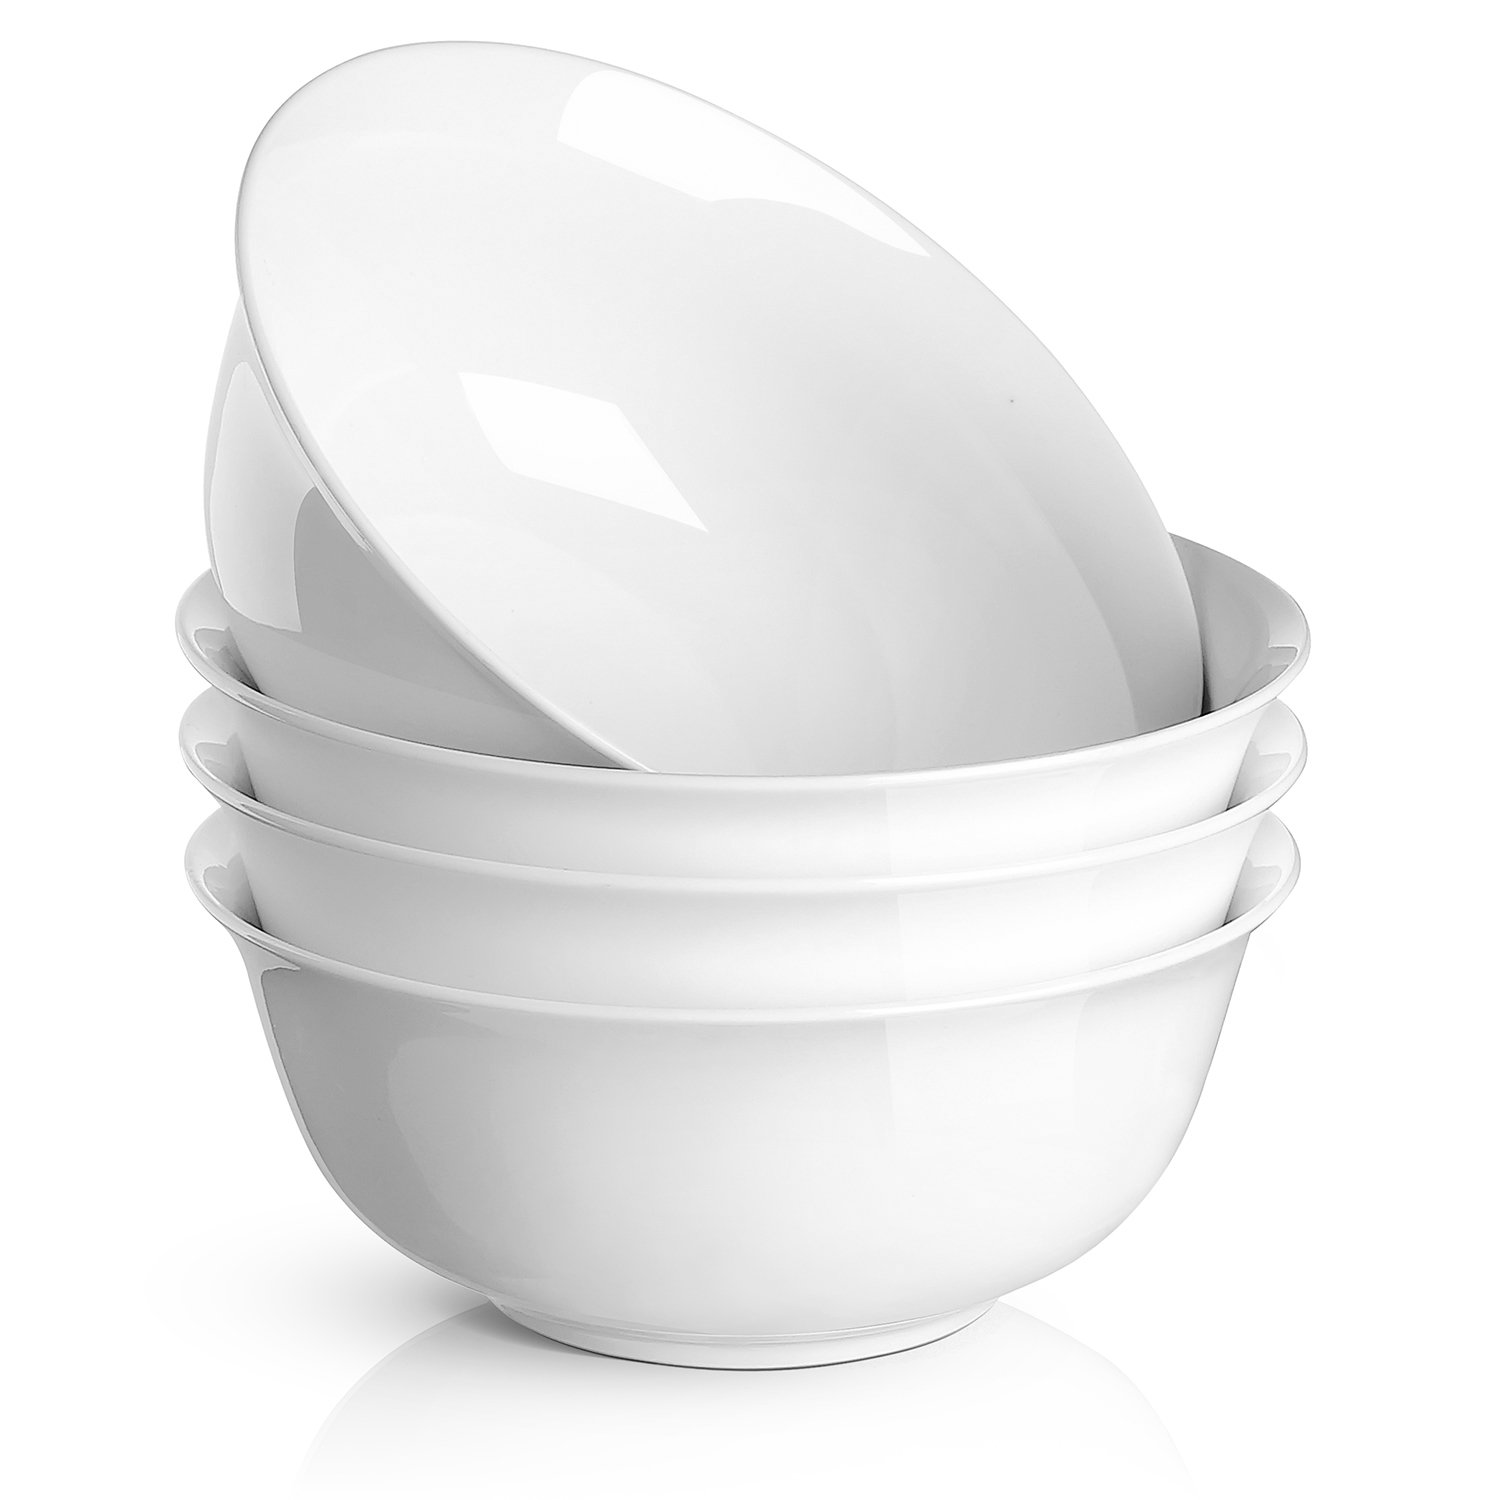 DOWAN 24 oz Porcelain Cereal/Soup Bowl , White - Set of 4